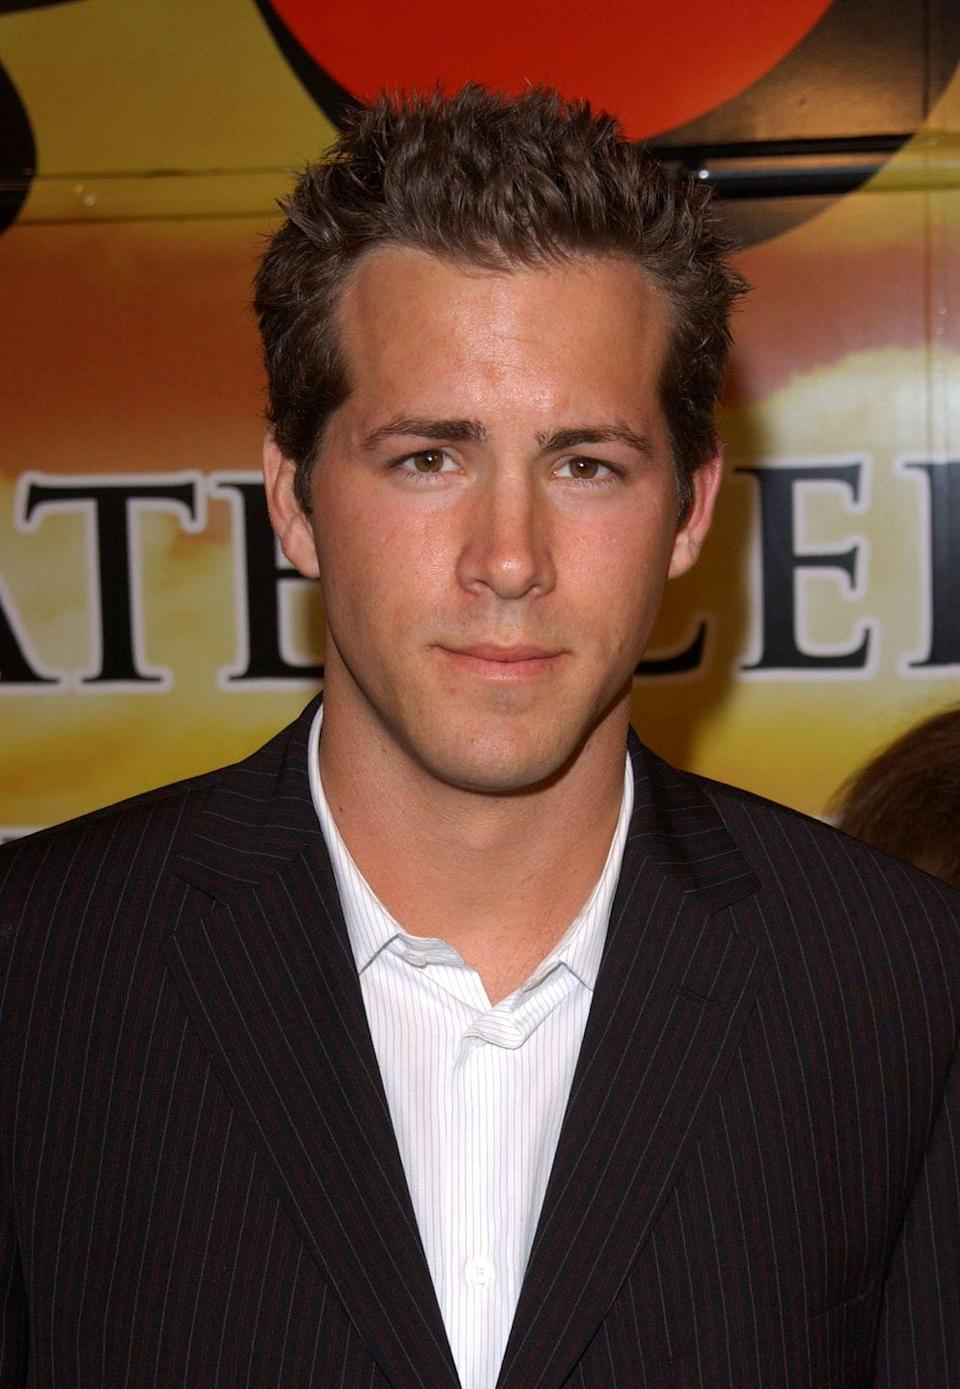 <p>Talk about a throwback hairstyle. Ryan Reynolds arrived at the premiere of <em>National Lampoon's Van Wilder </em>in 2002 with his brown hair in a signature 2000s spike. </p>